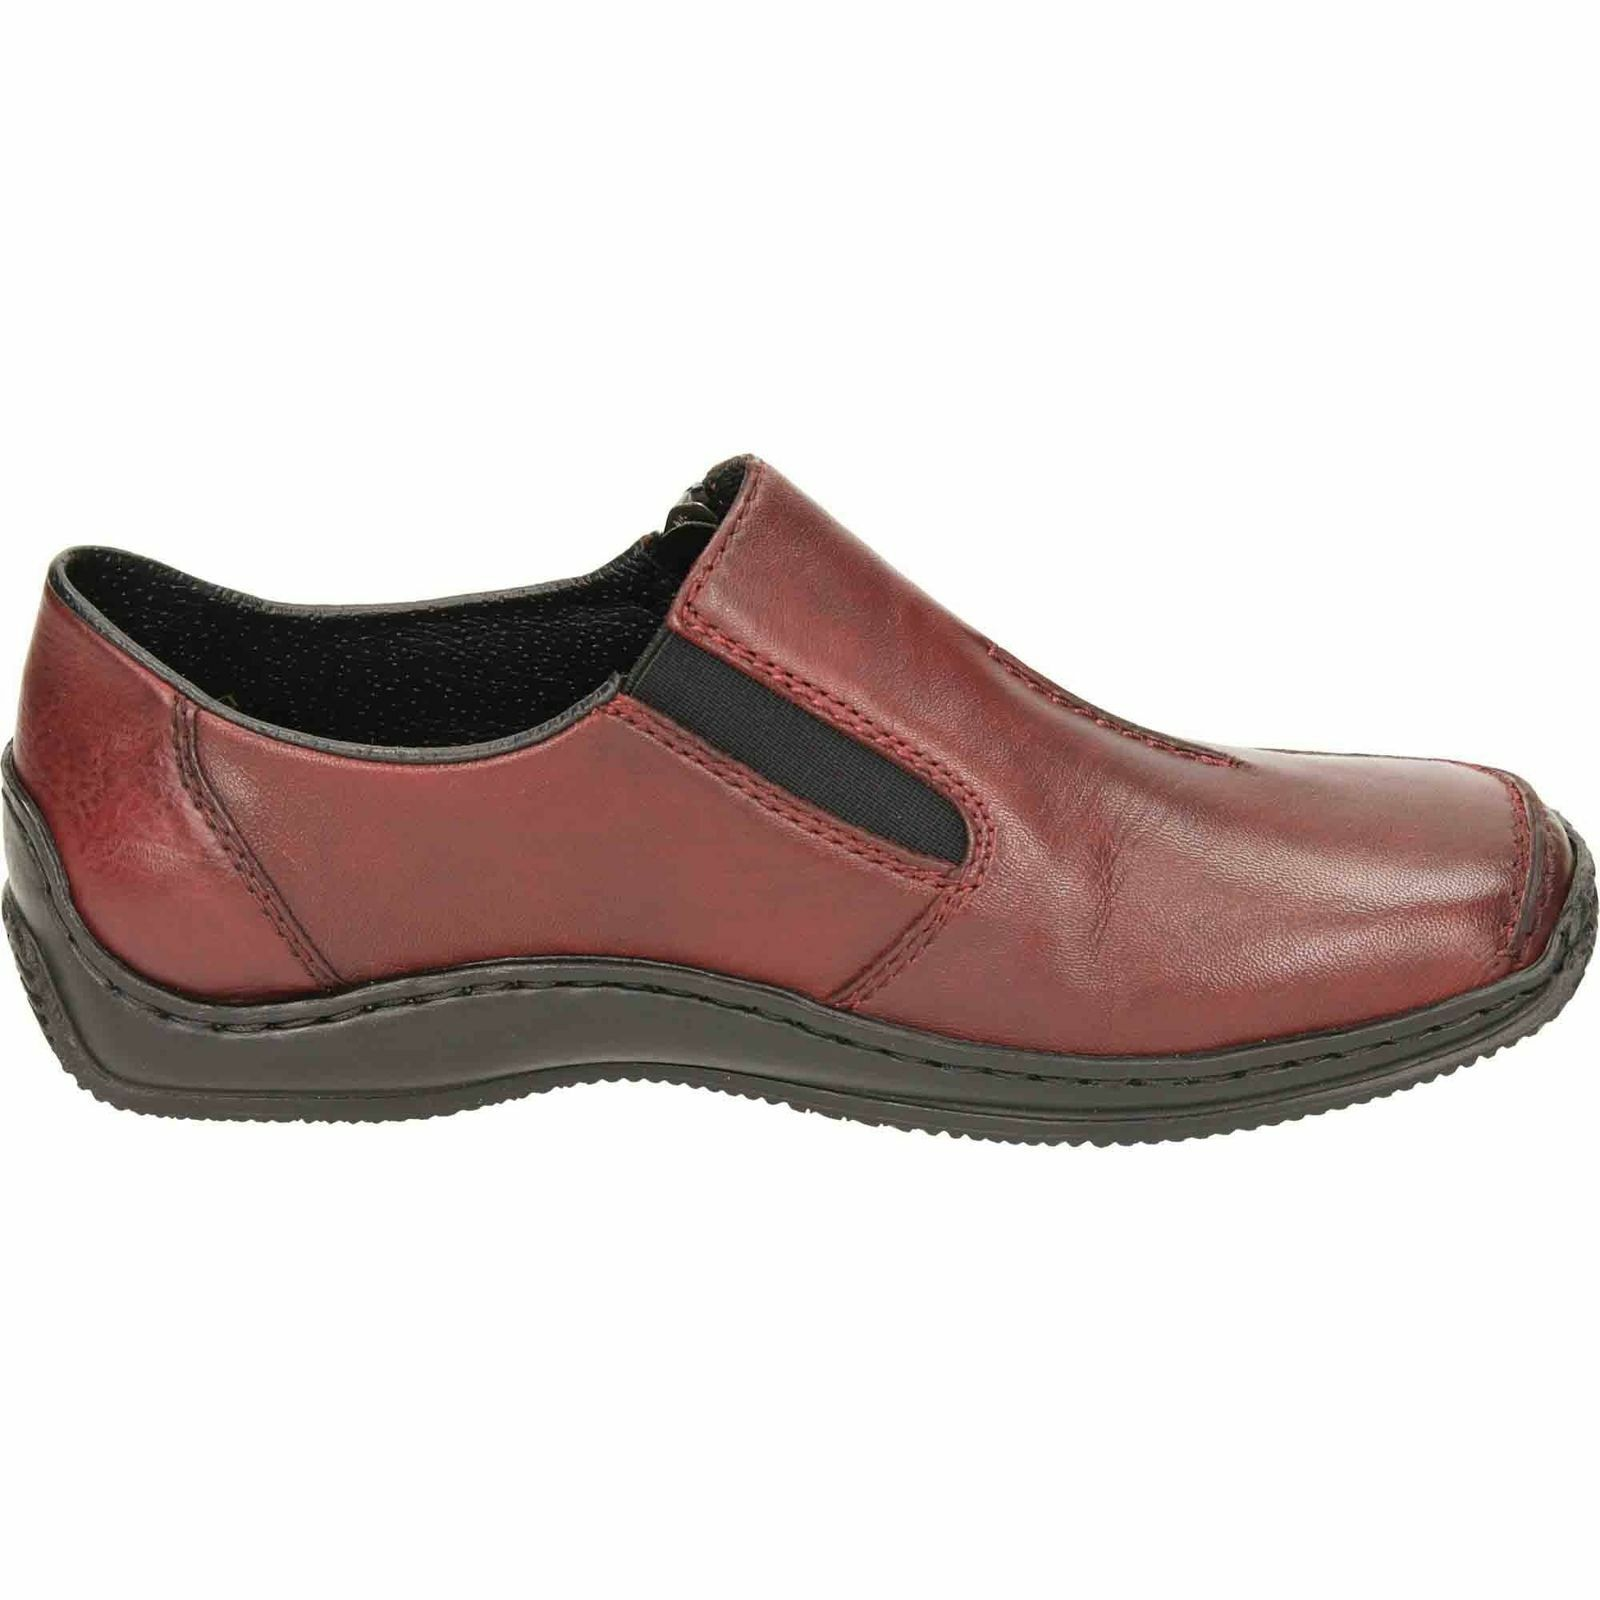 LADIES RIEKER L1780-35 ROT CLOSED CLOSED CLOSED IN Schuhe bfdf67